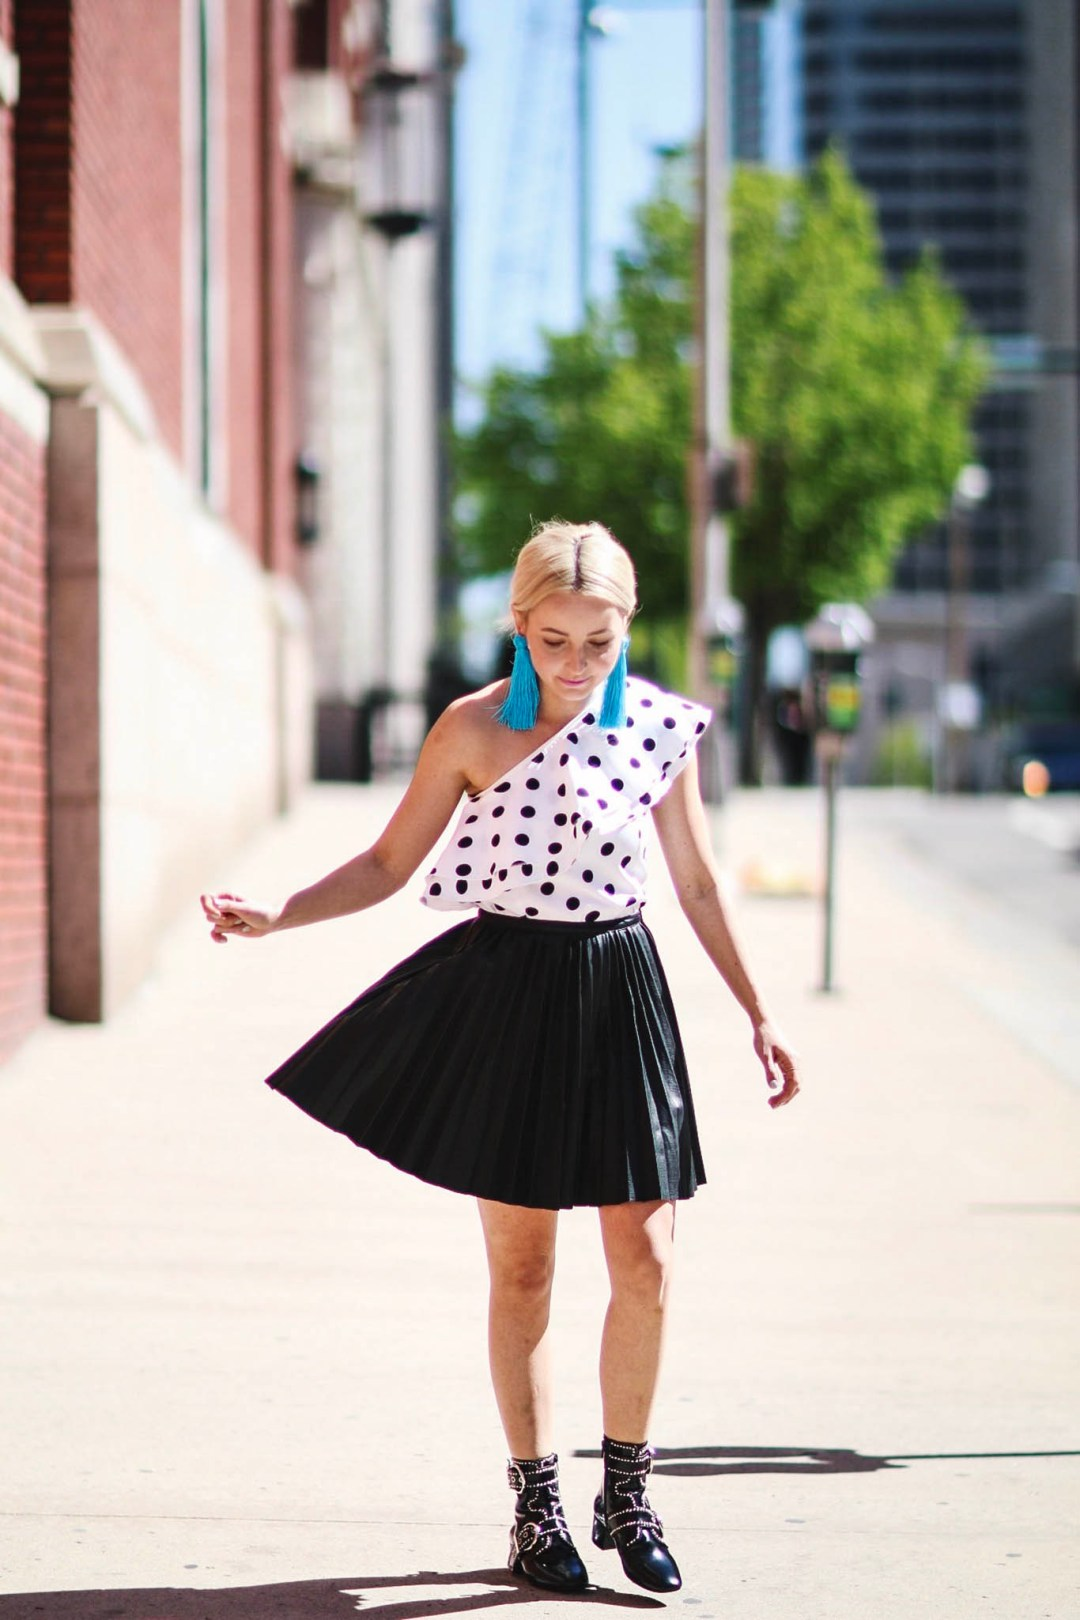 Alena Gidenko of modaprints.com styles an off the shoulder polka dot top with a black pleated skirt